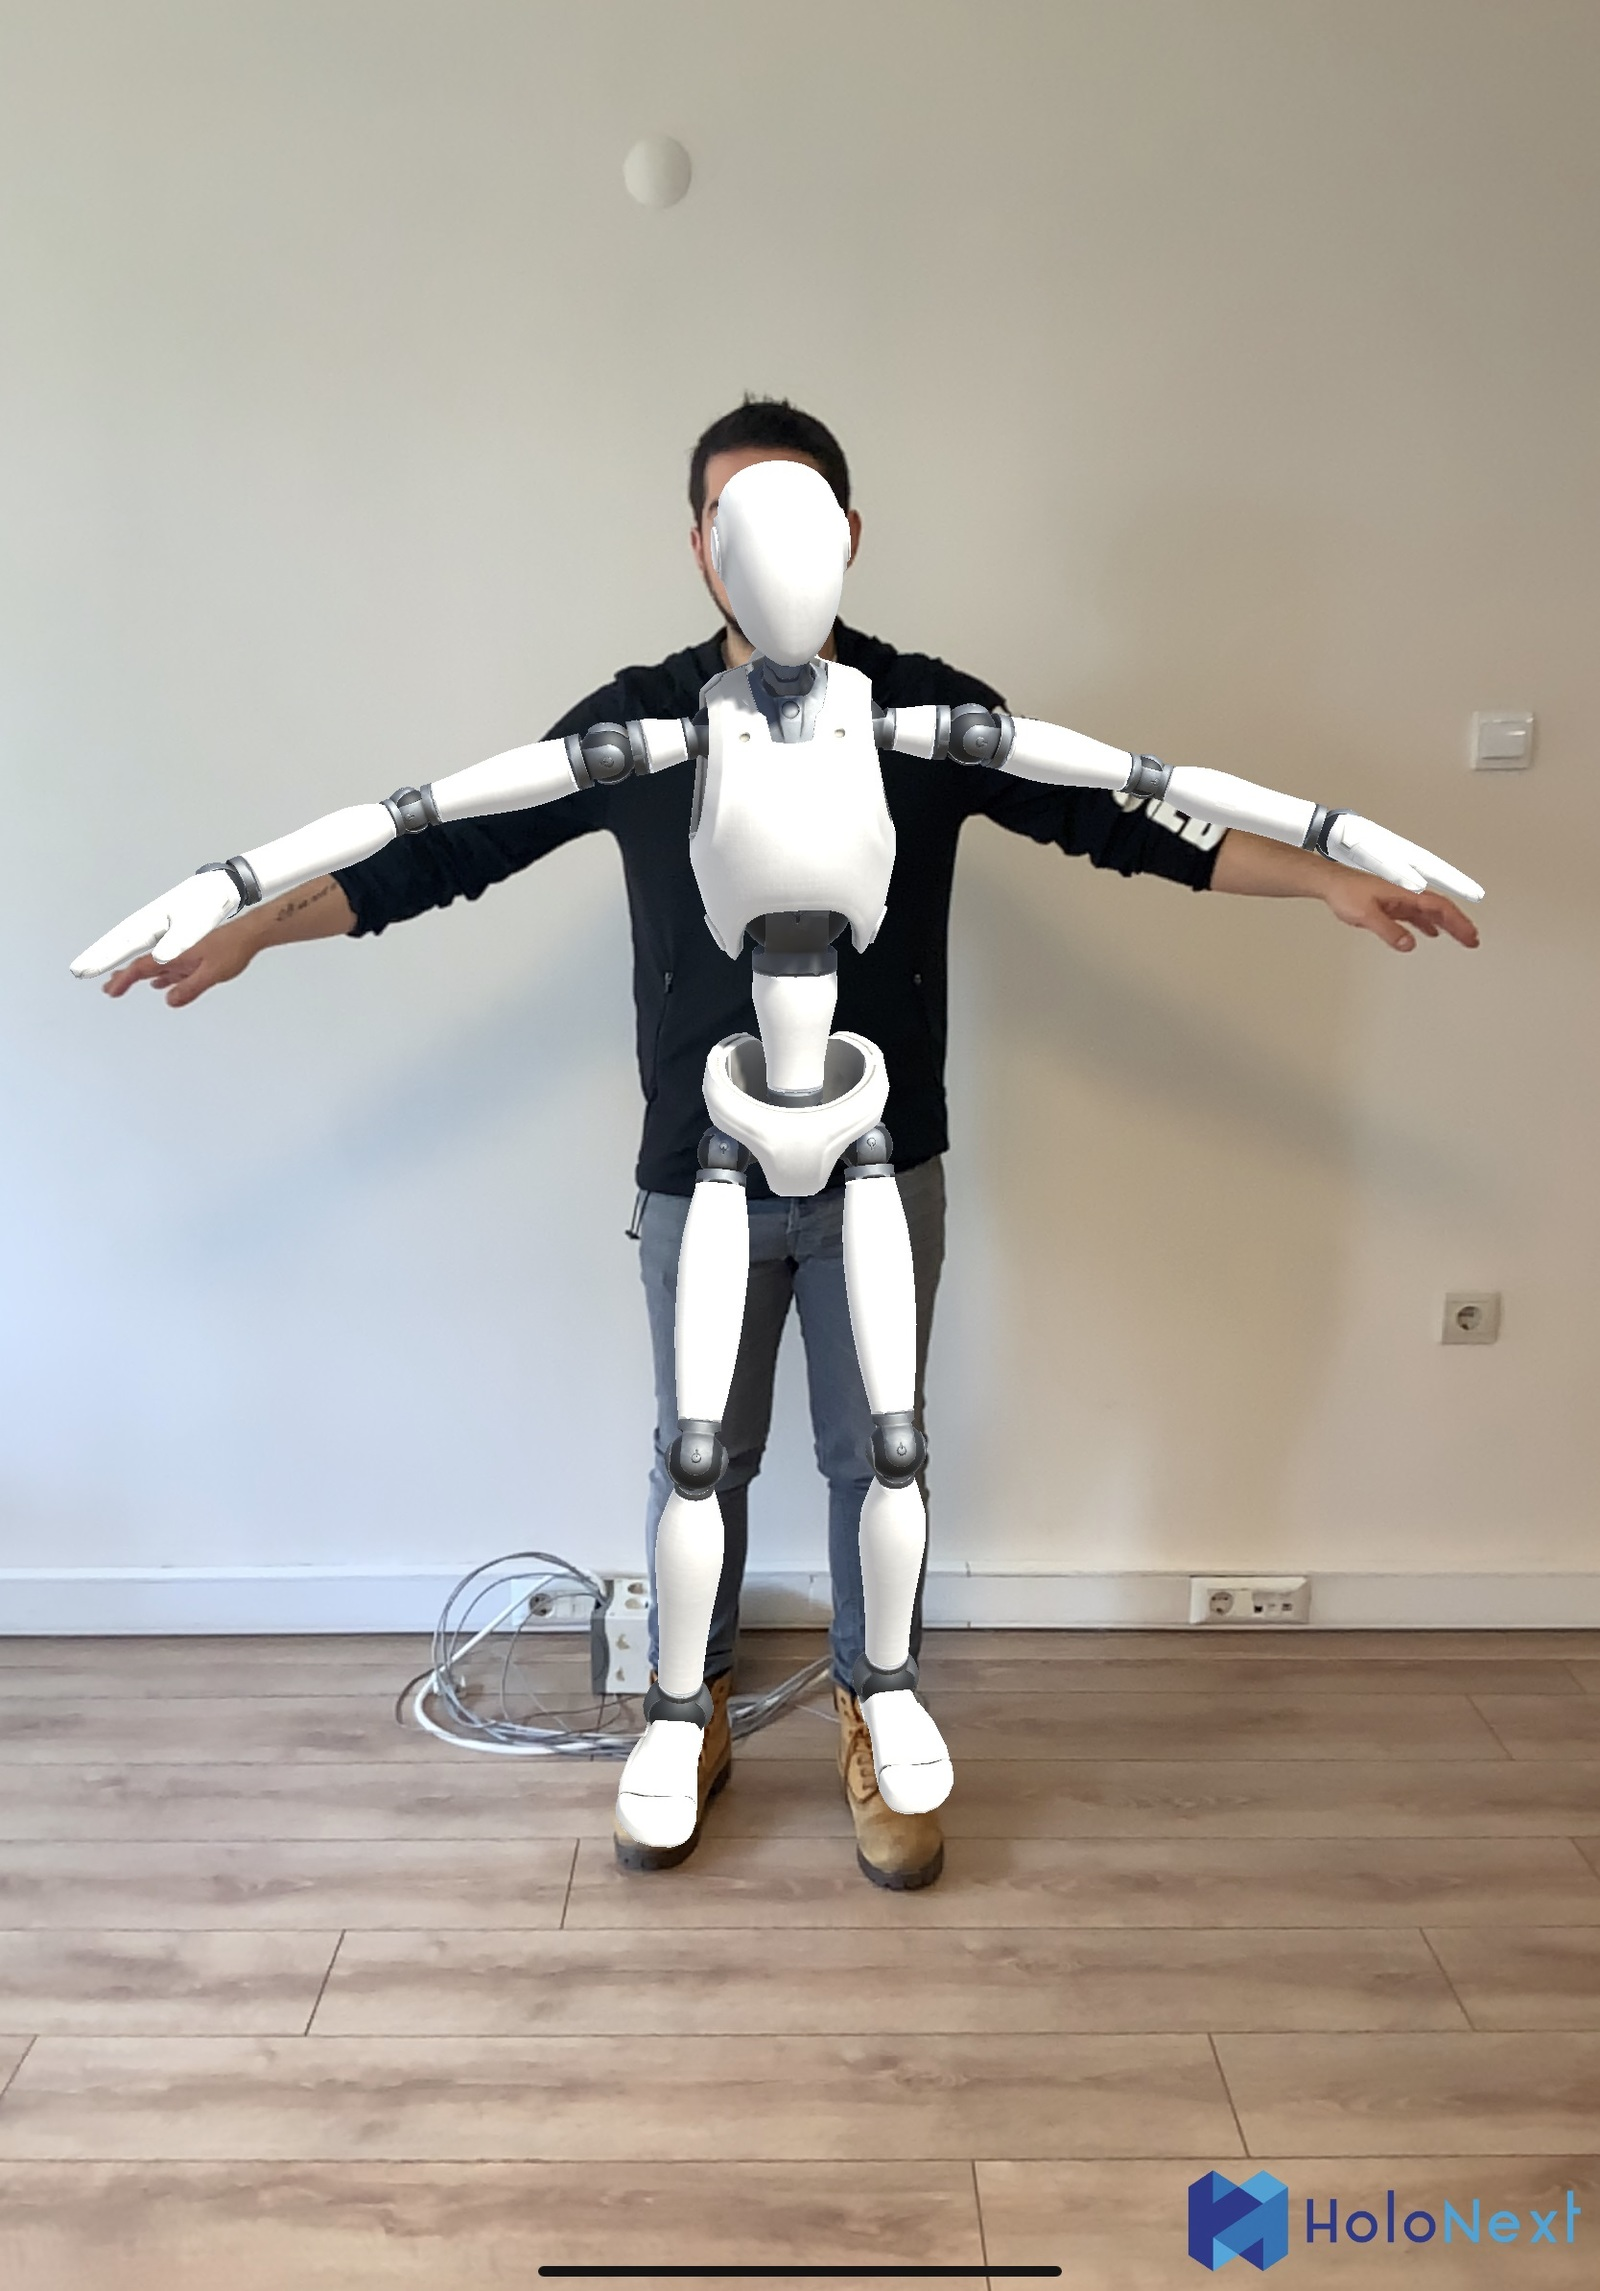 Human Body Augmentation by Holonext